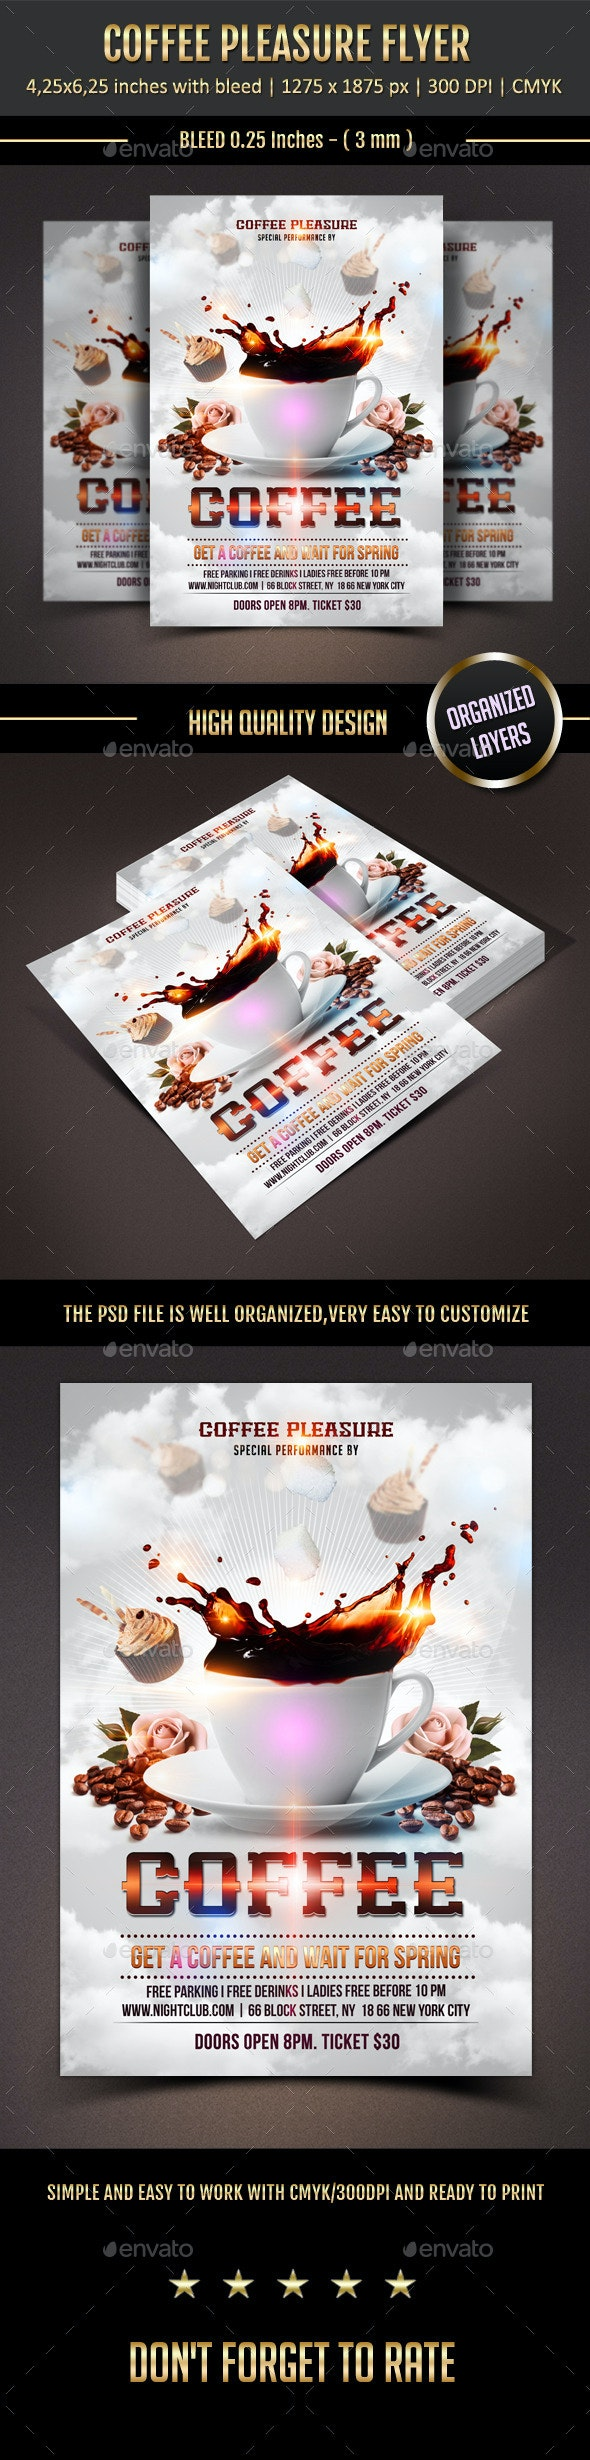 Coffee Pleasure Flyer - Events Flyers